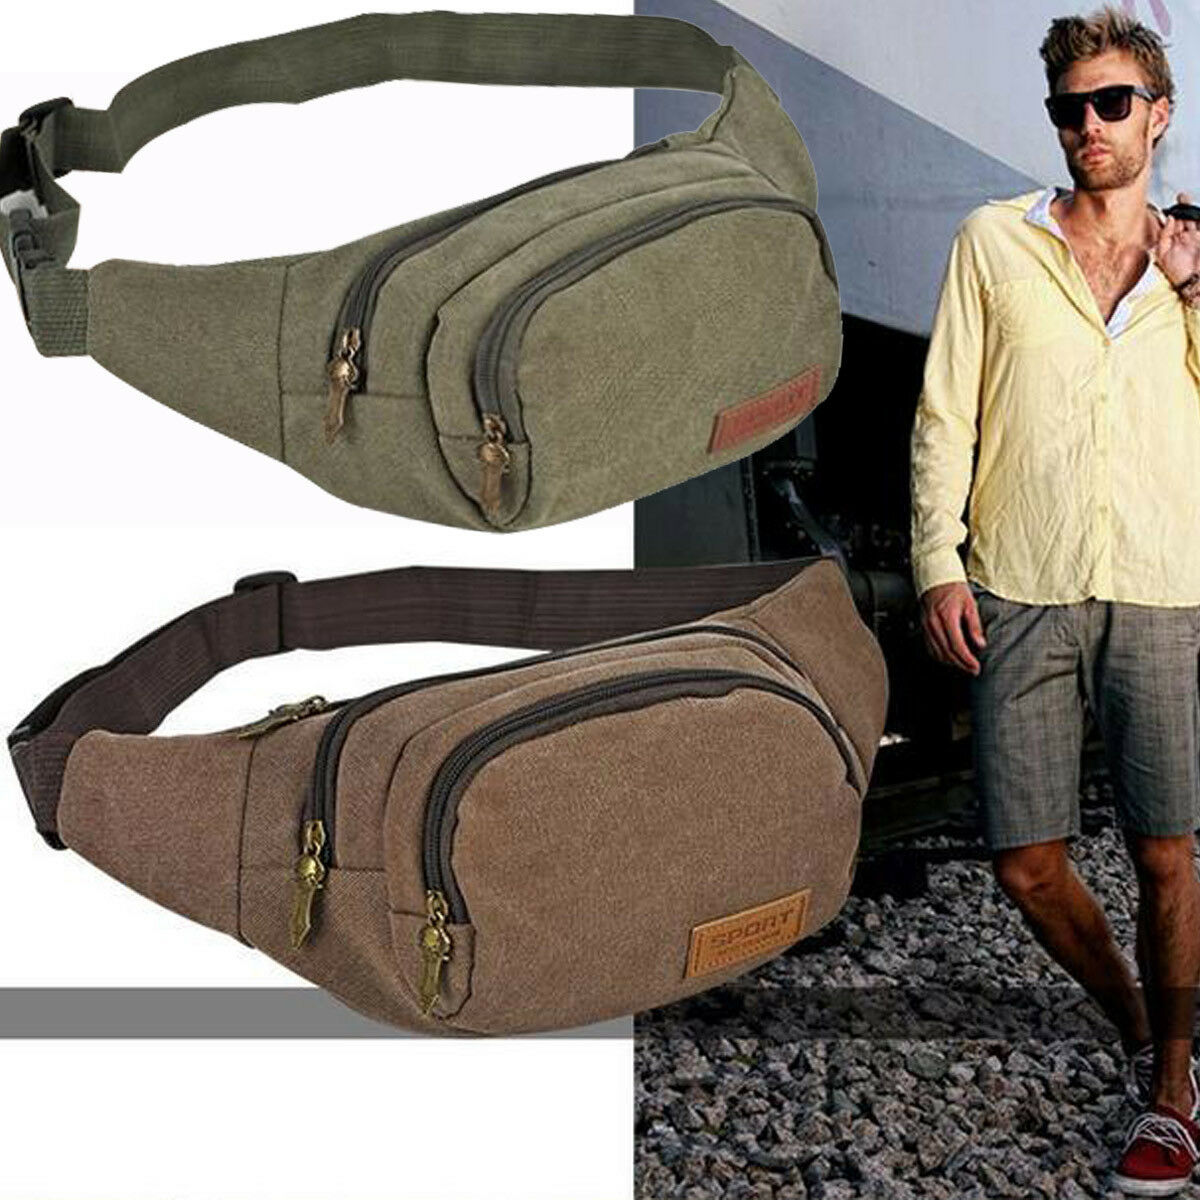 Mens Military Cycling Waist Fanny Pack Bum Belt Bag Pouch Travel Hip P... - s l1600